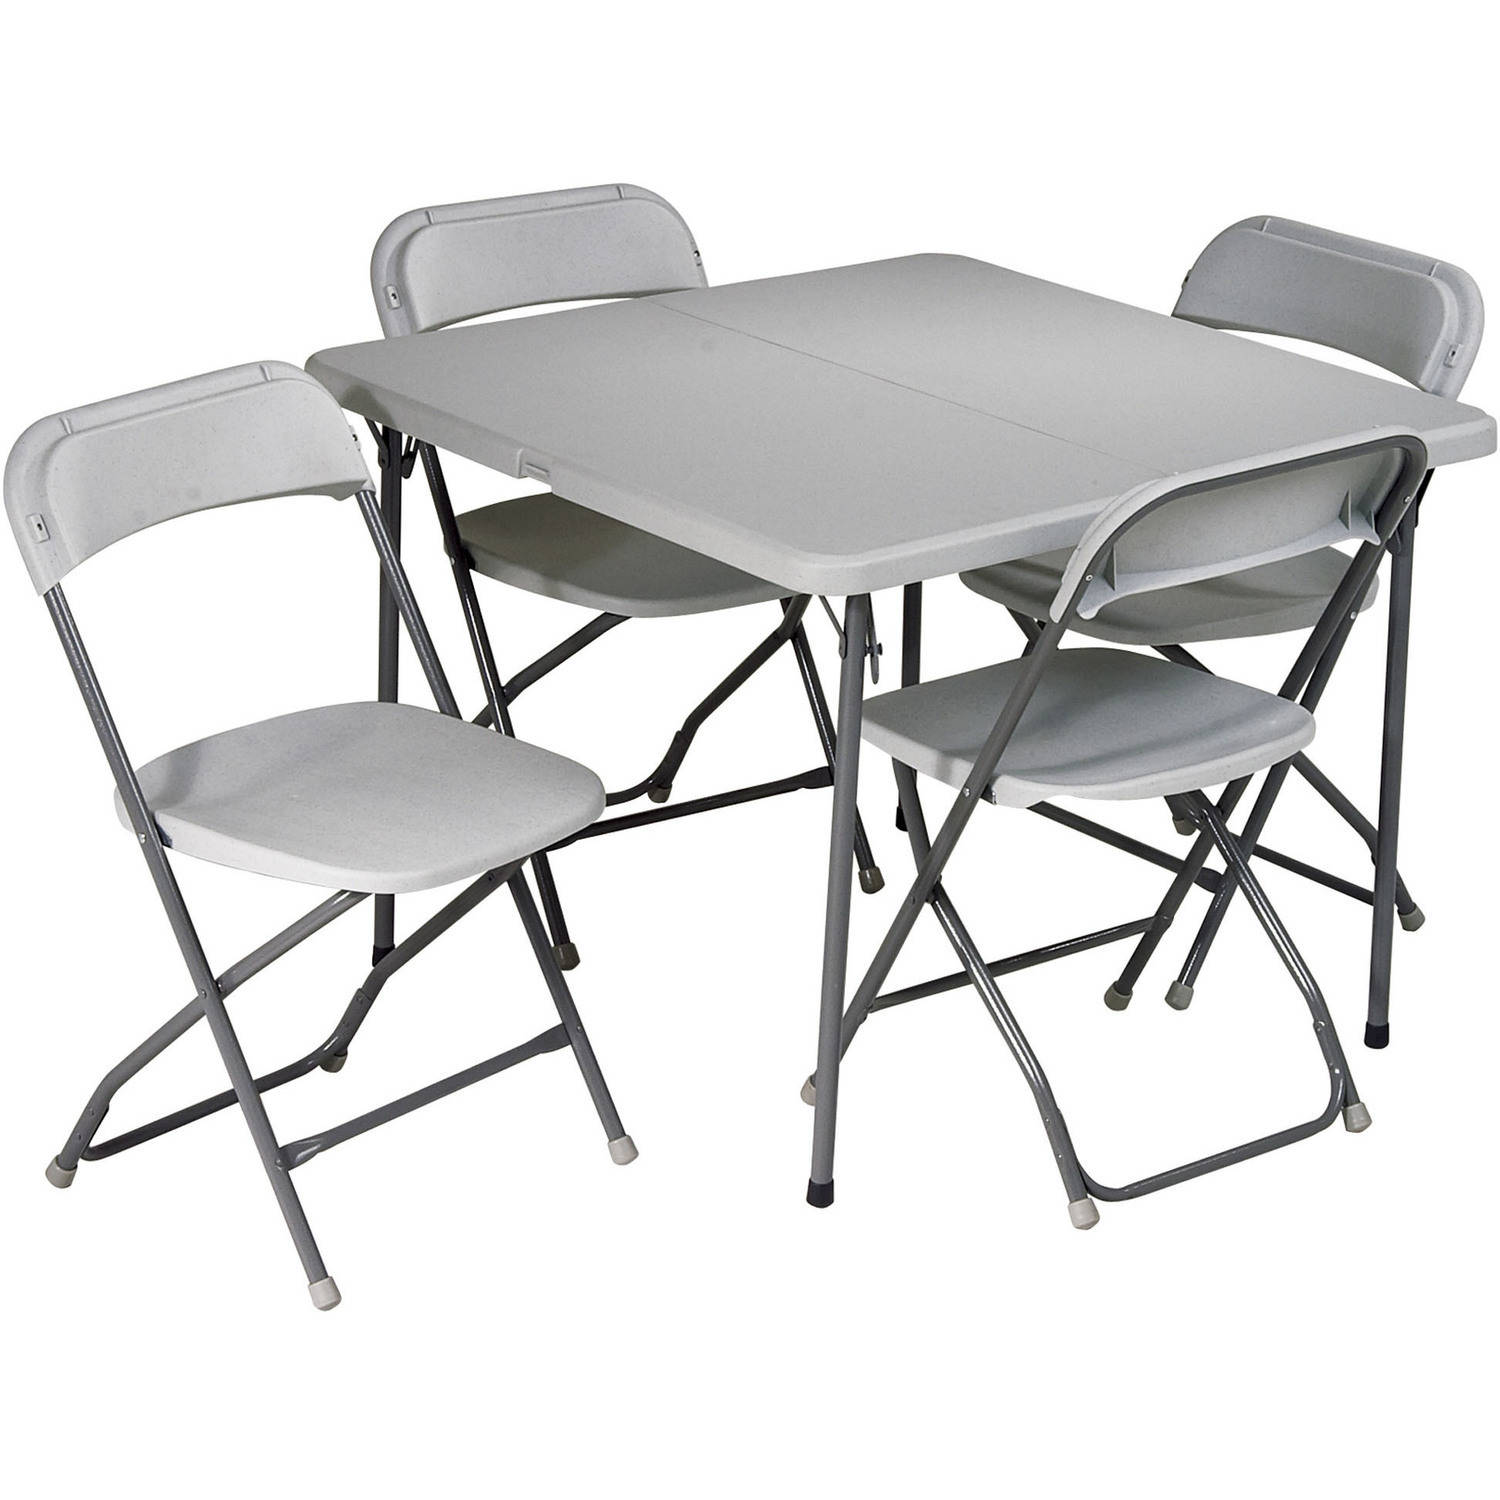 Attractive folding table and chairs office star work smart 5-piece folding table and chair set lryehsa